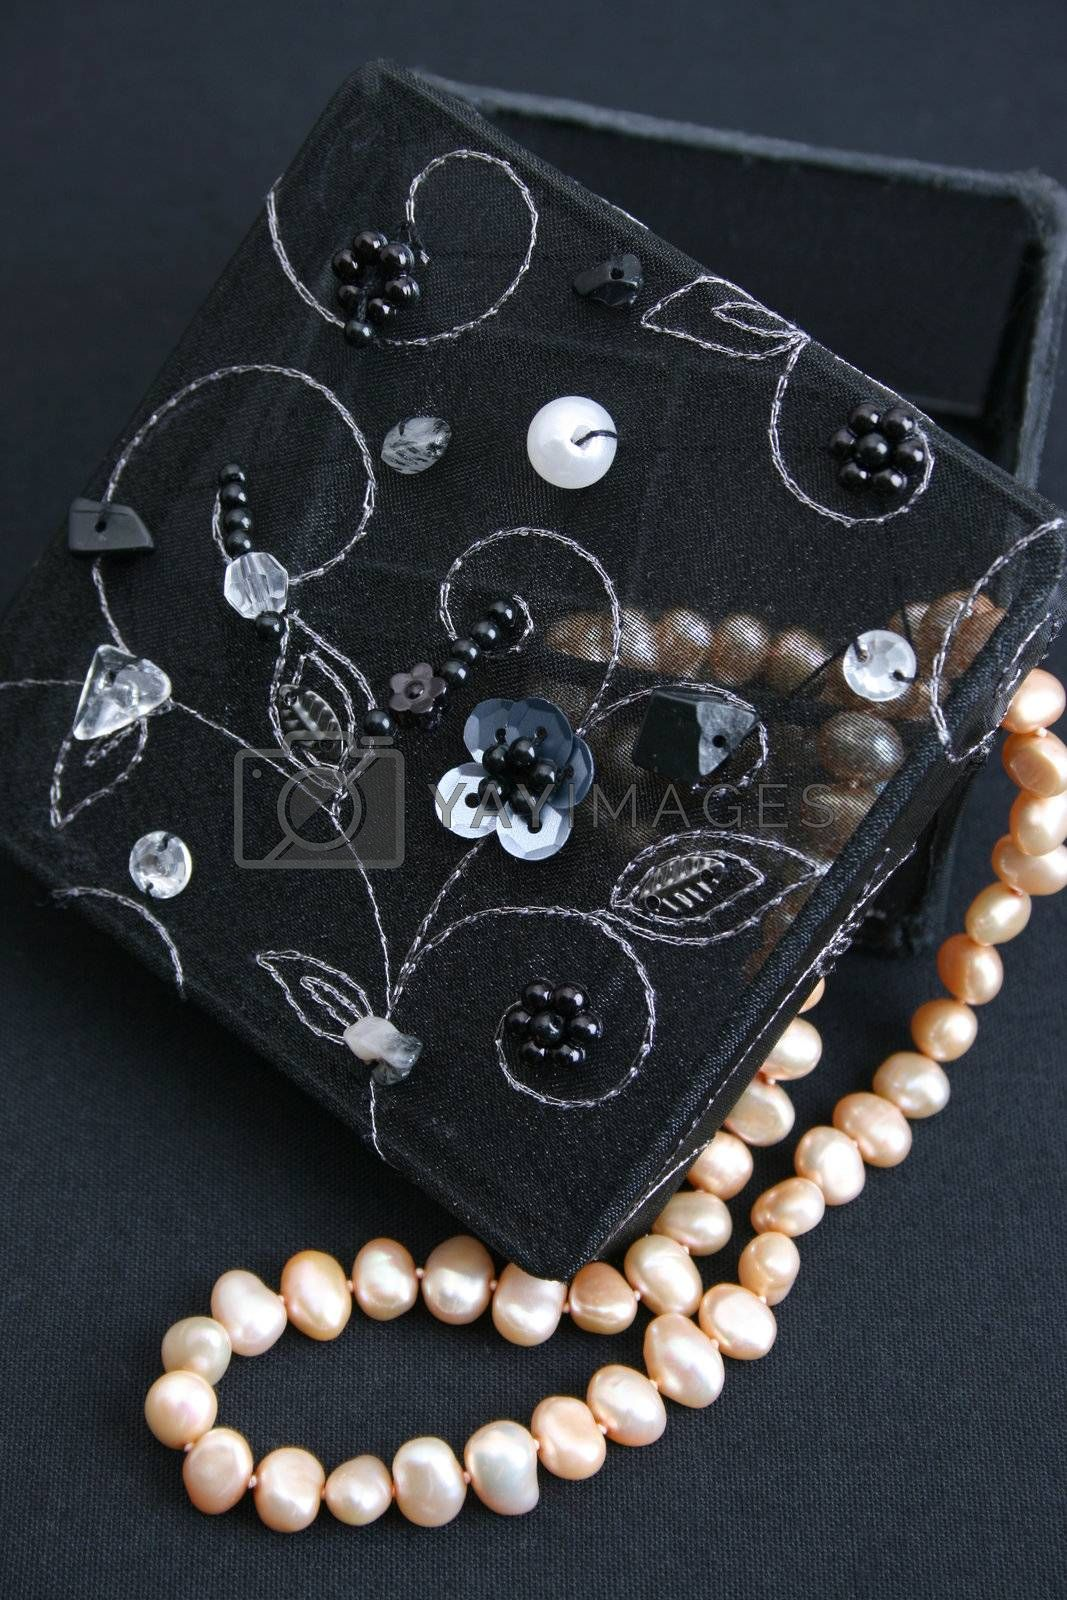 Black embroidered jewelery box with a string of pearls